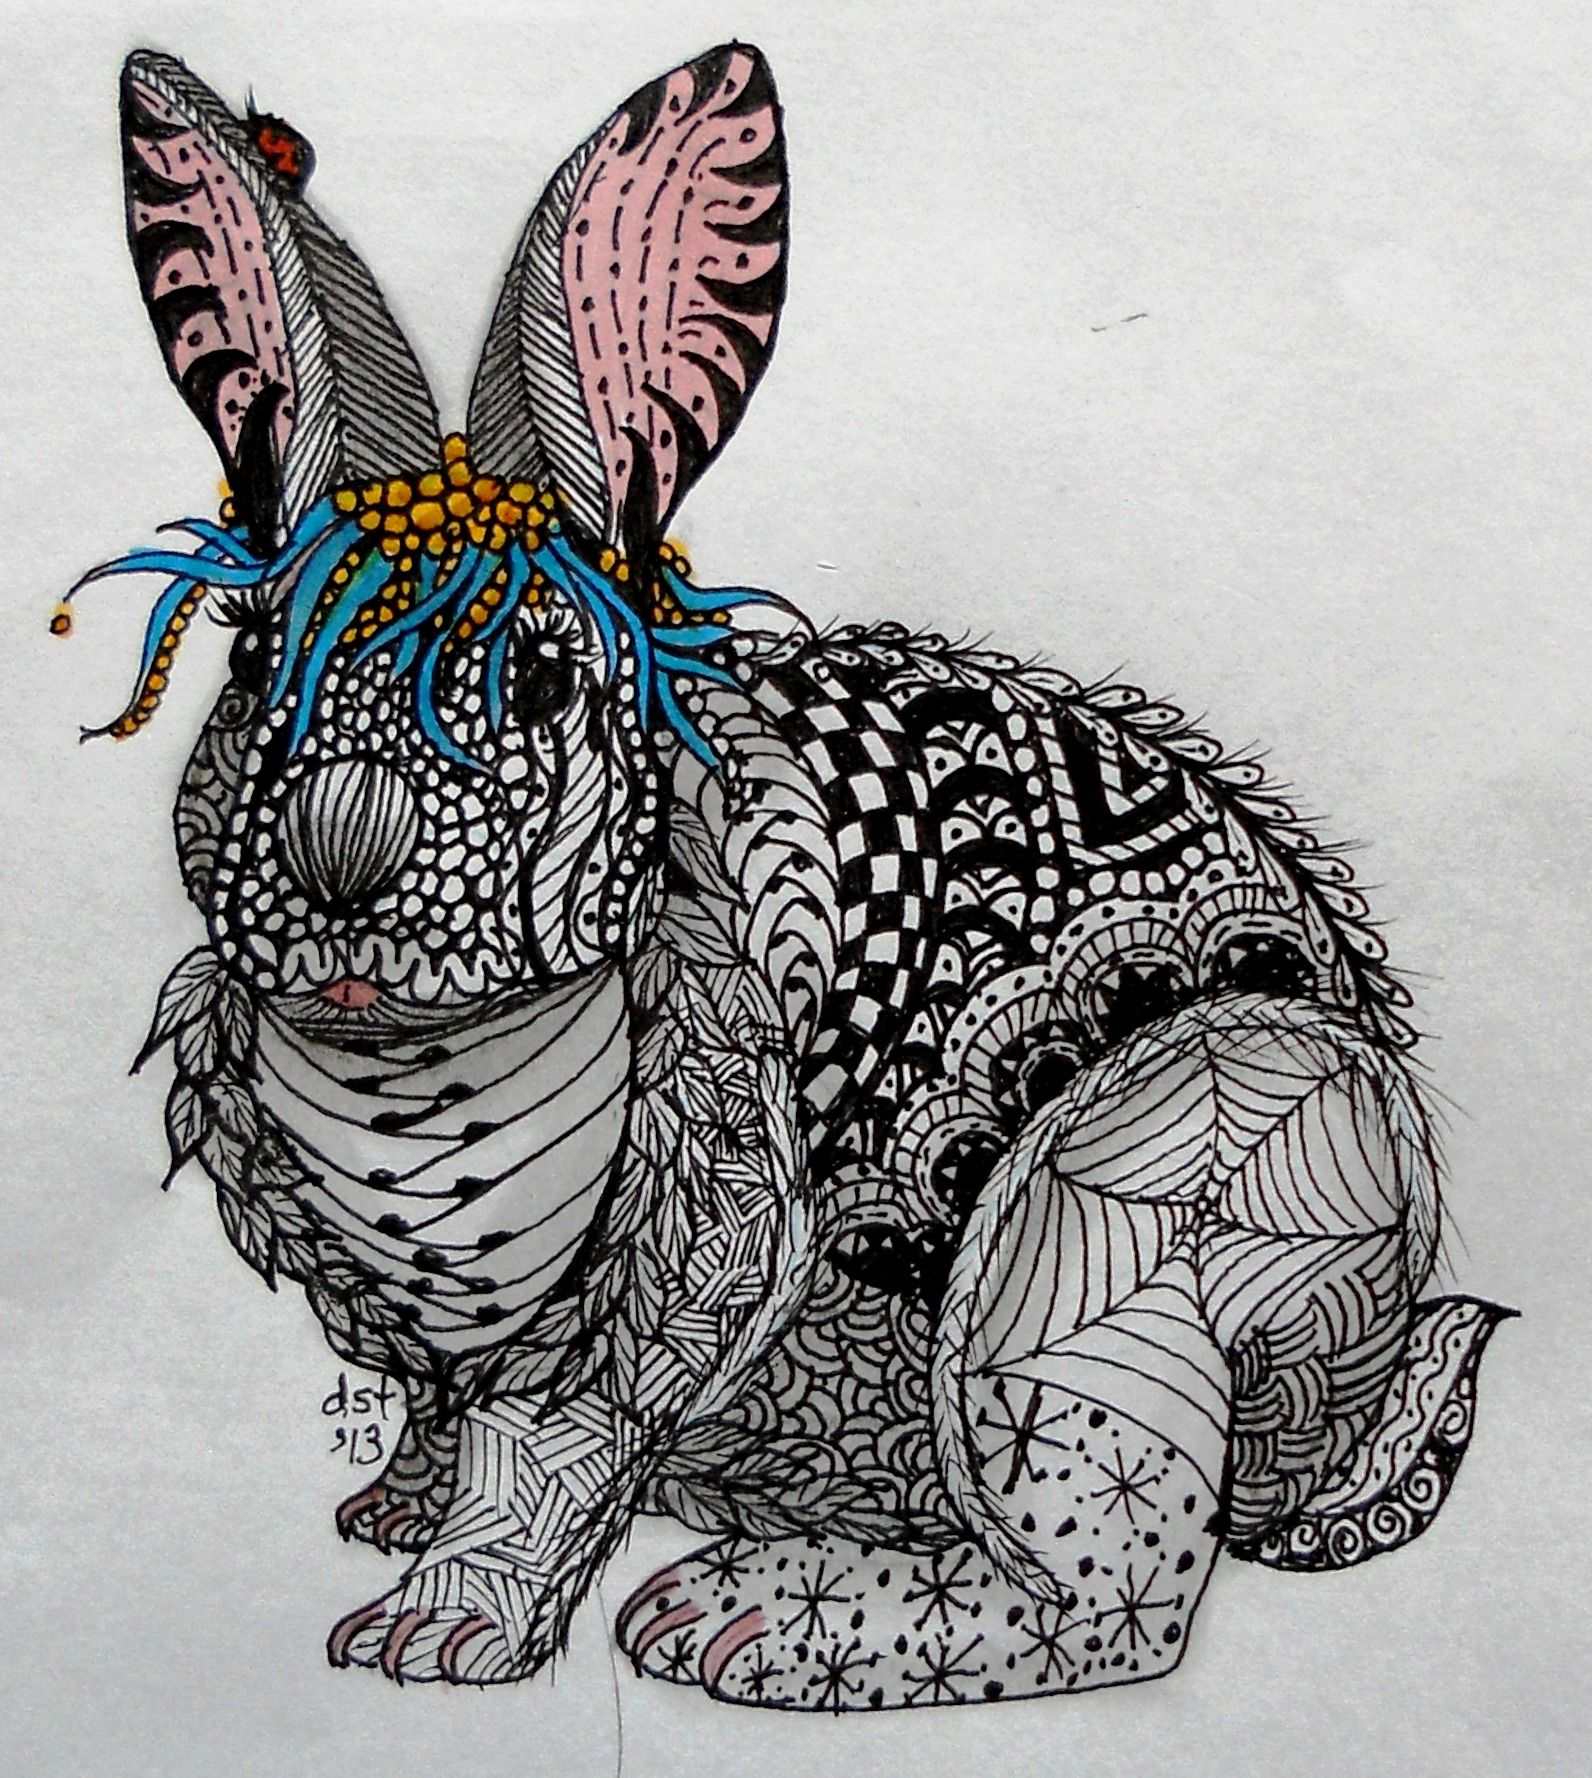 Dusty Zentangle Art Form On The Bunny Check Out The Ear On The Left Ladybug Template